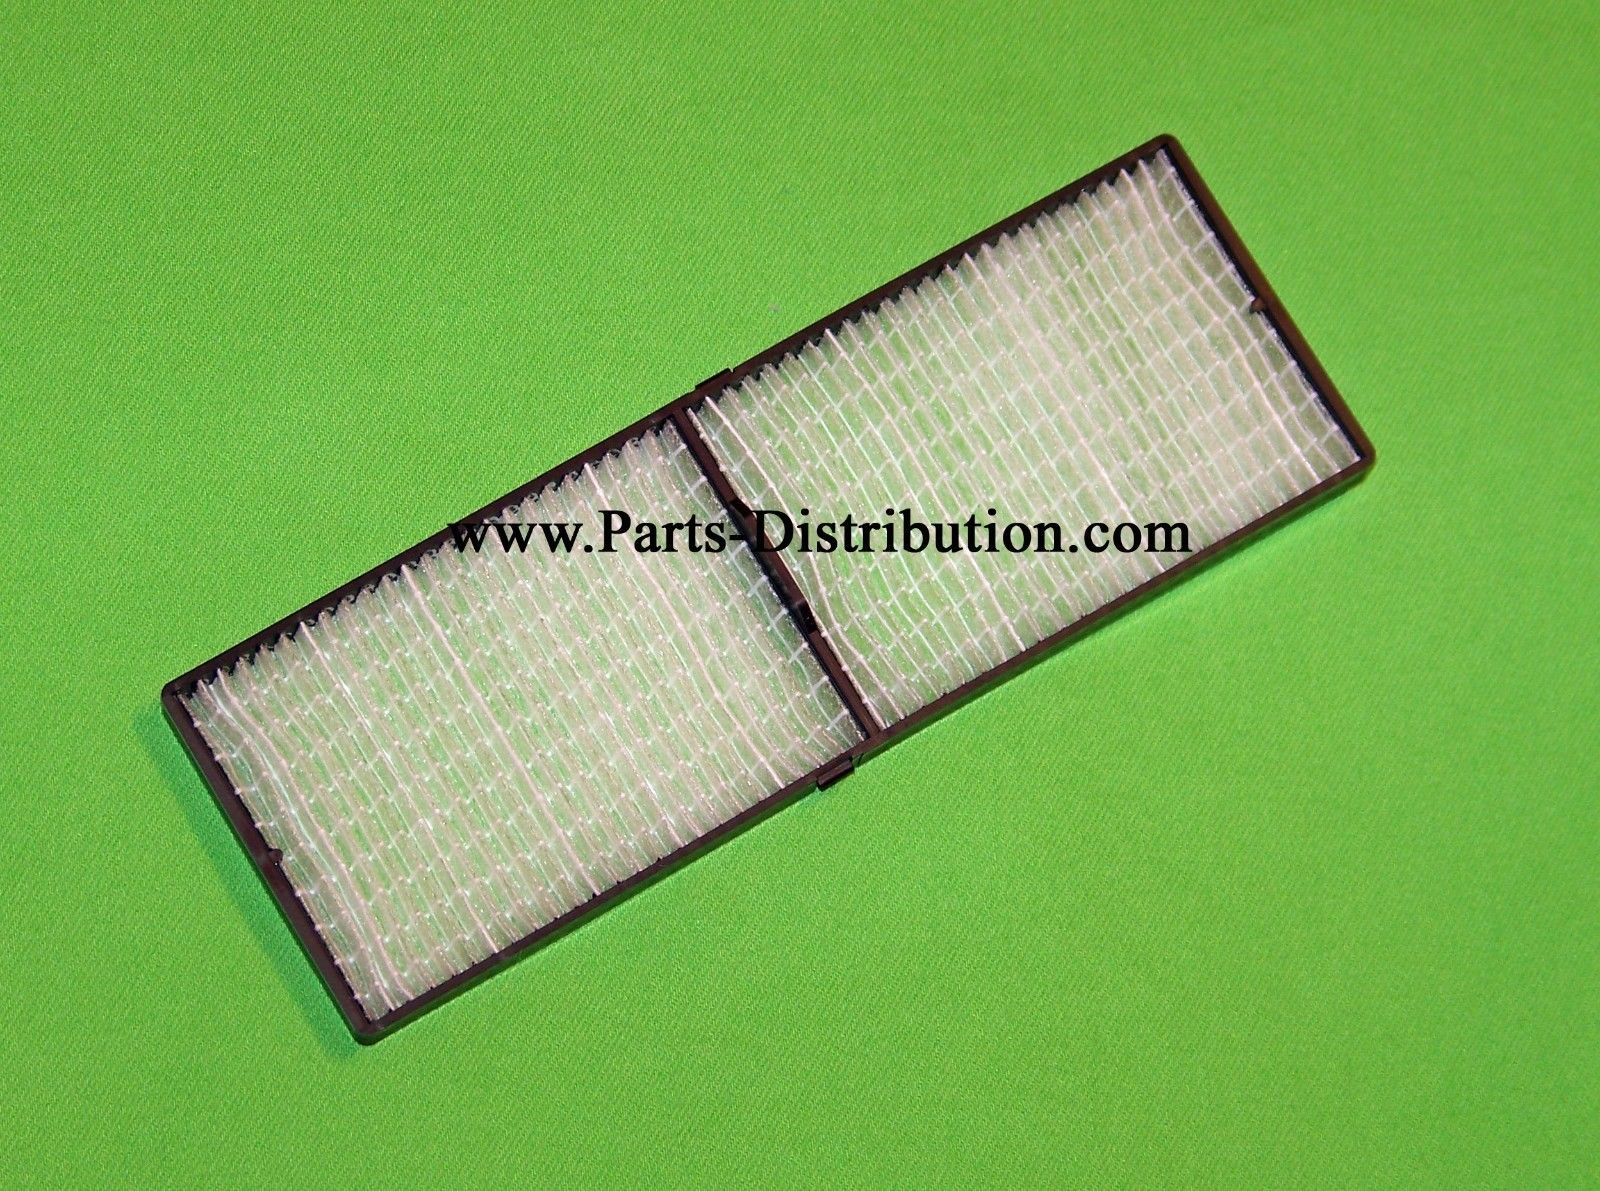 EB-1965 EB-1960 Epson Projector Air Filter